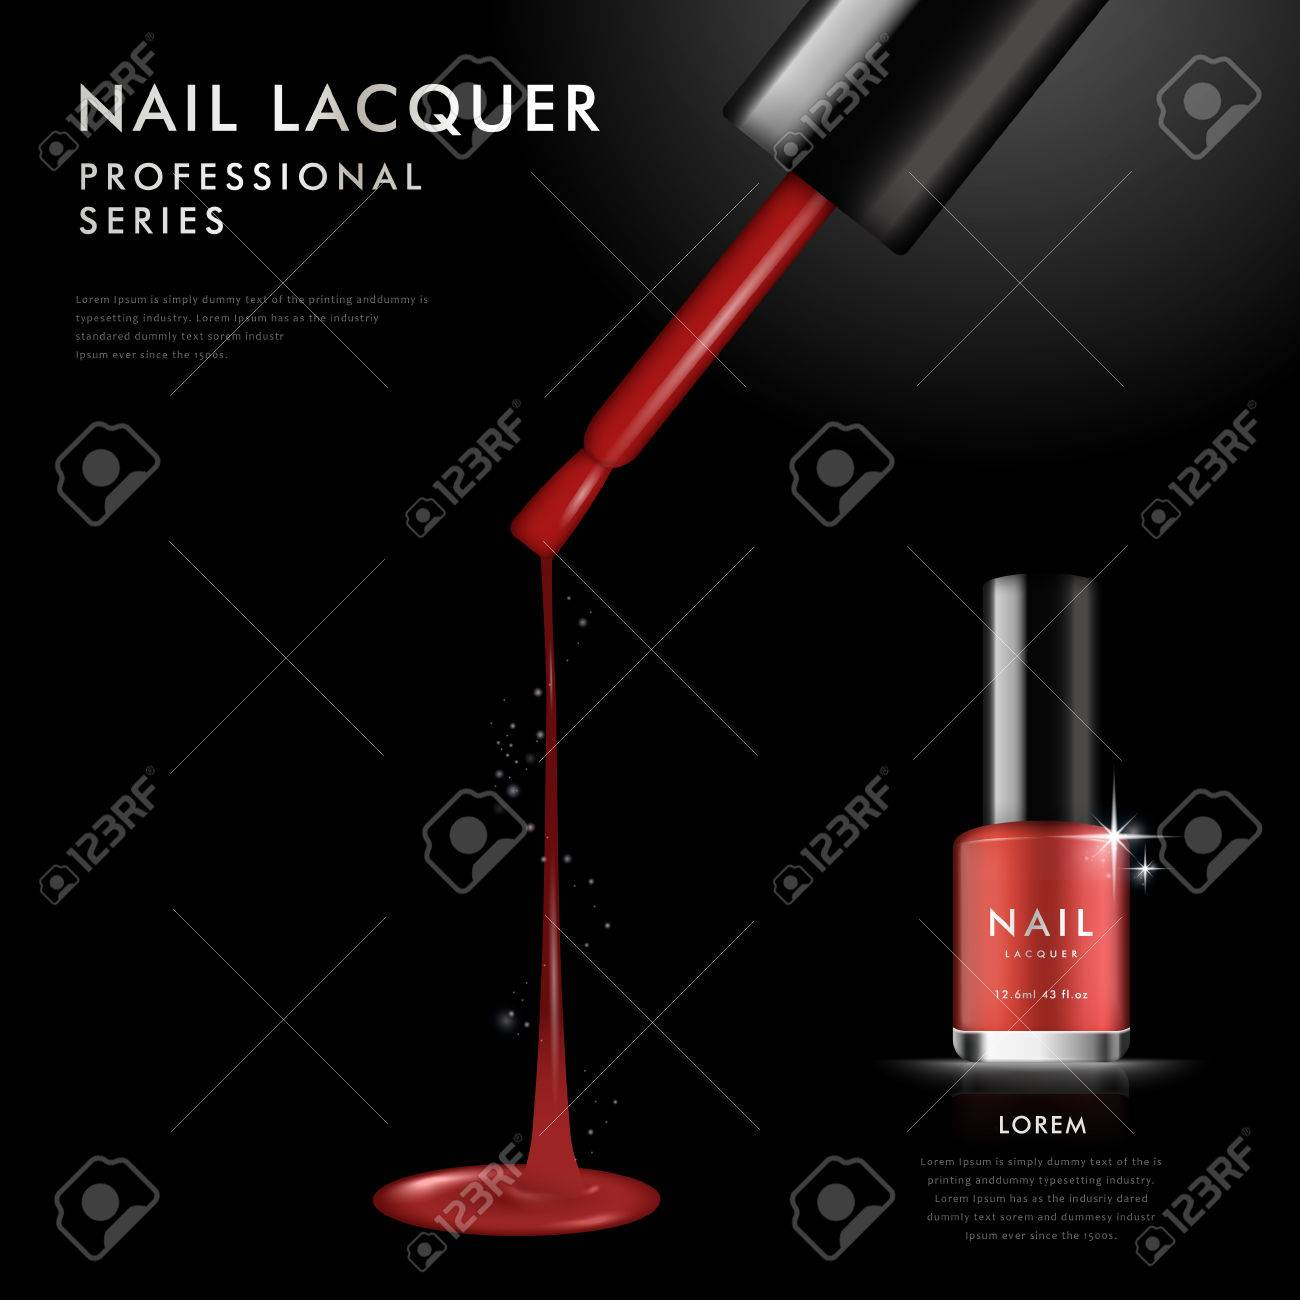 Elegant Red Nail Polish Ad Template, 3D Illustration Cosmetic ...